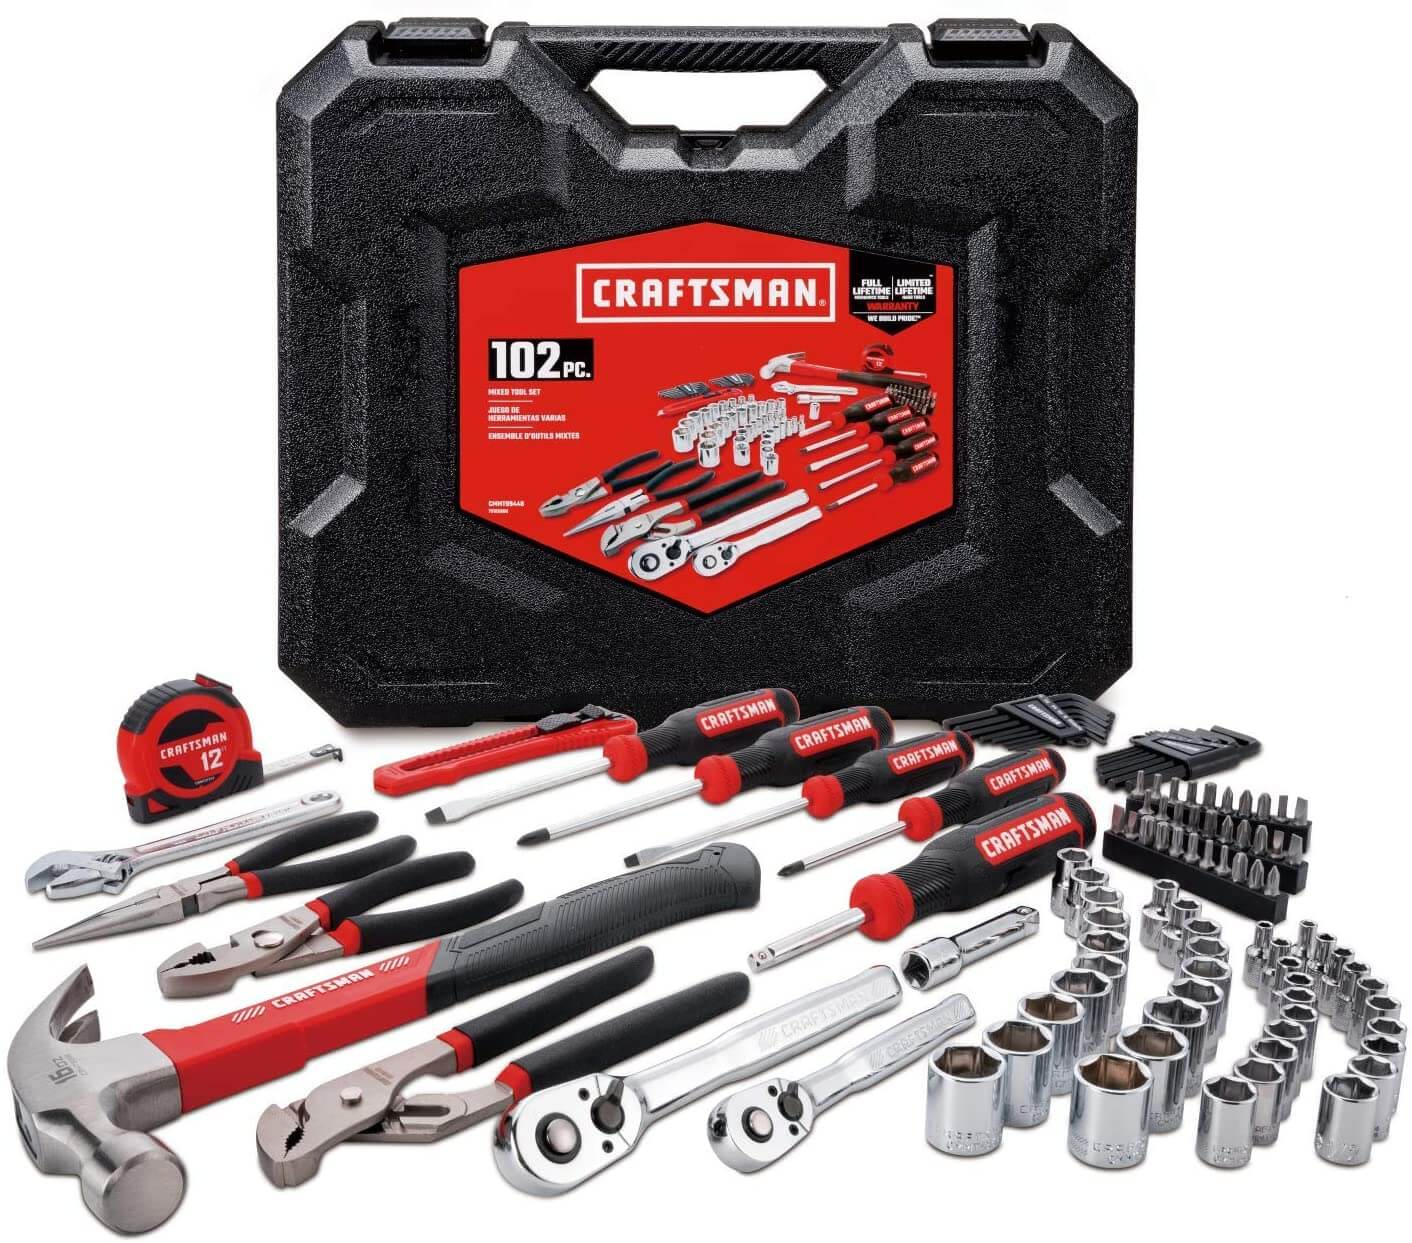 CRAFTSMAN Tool Sets for Boat Owners